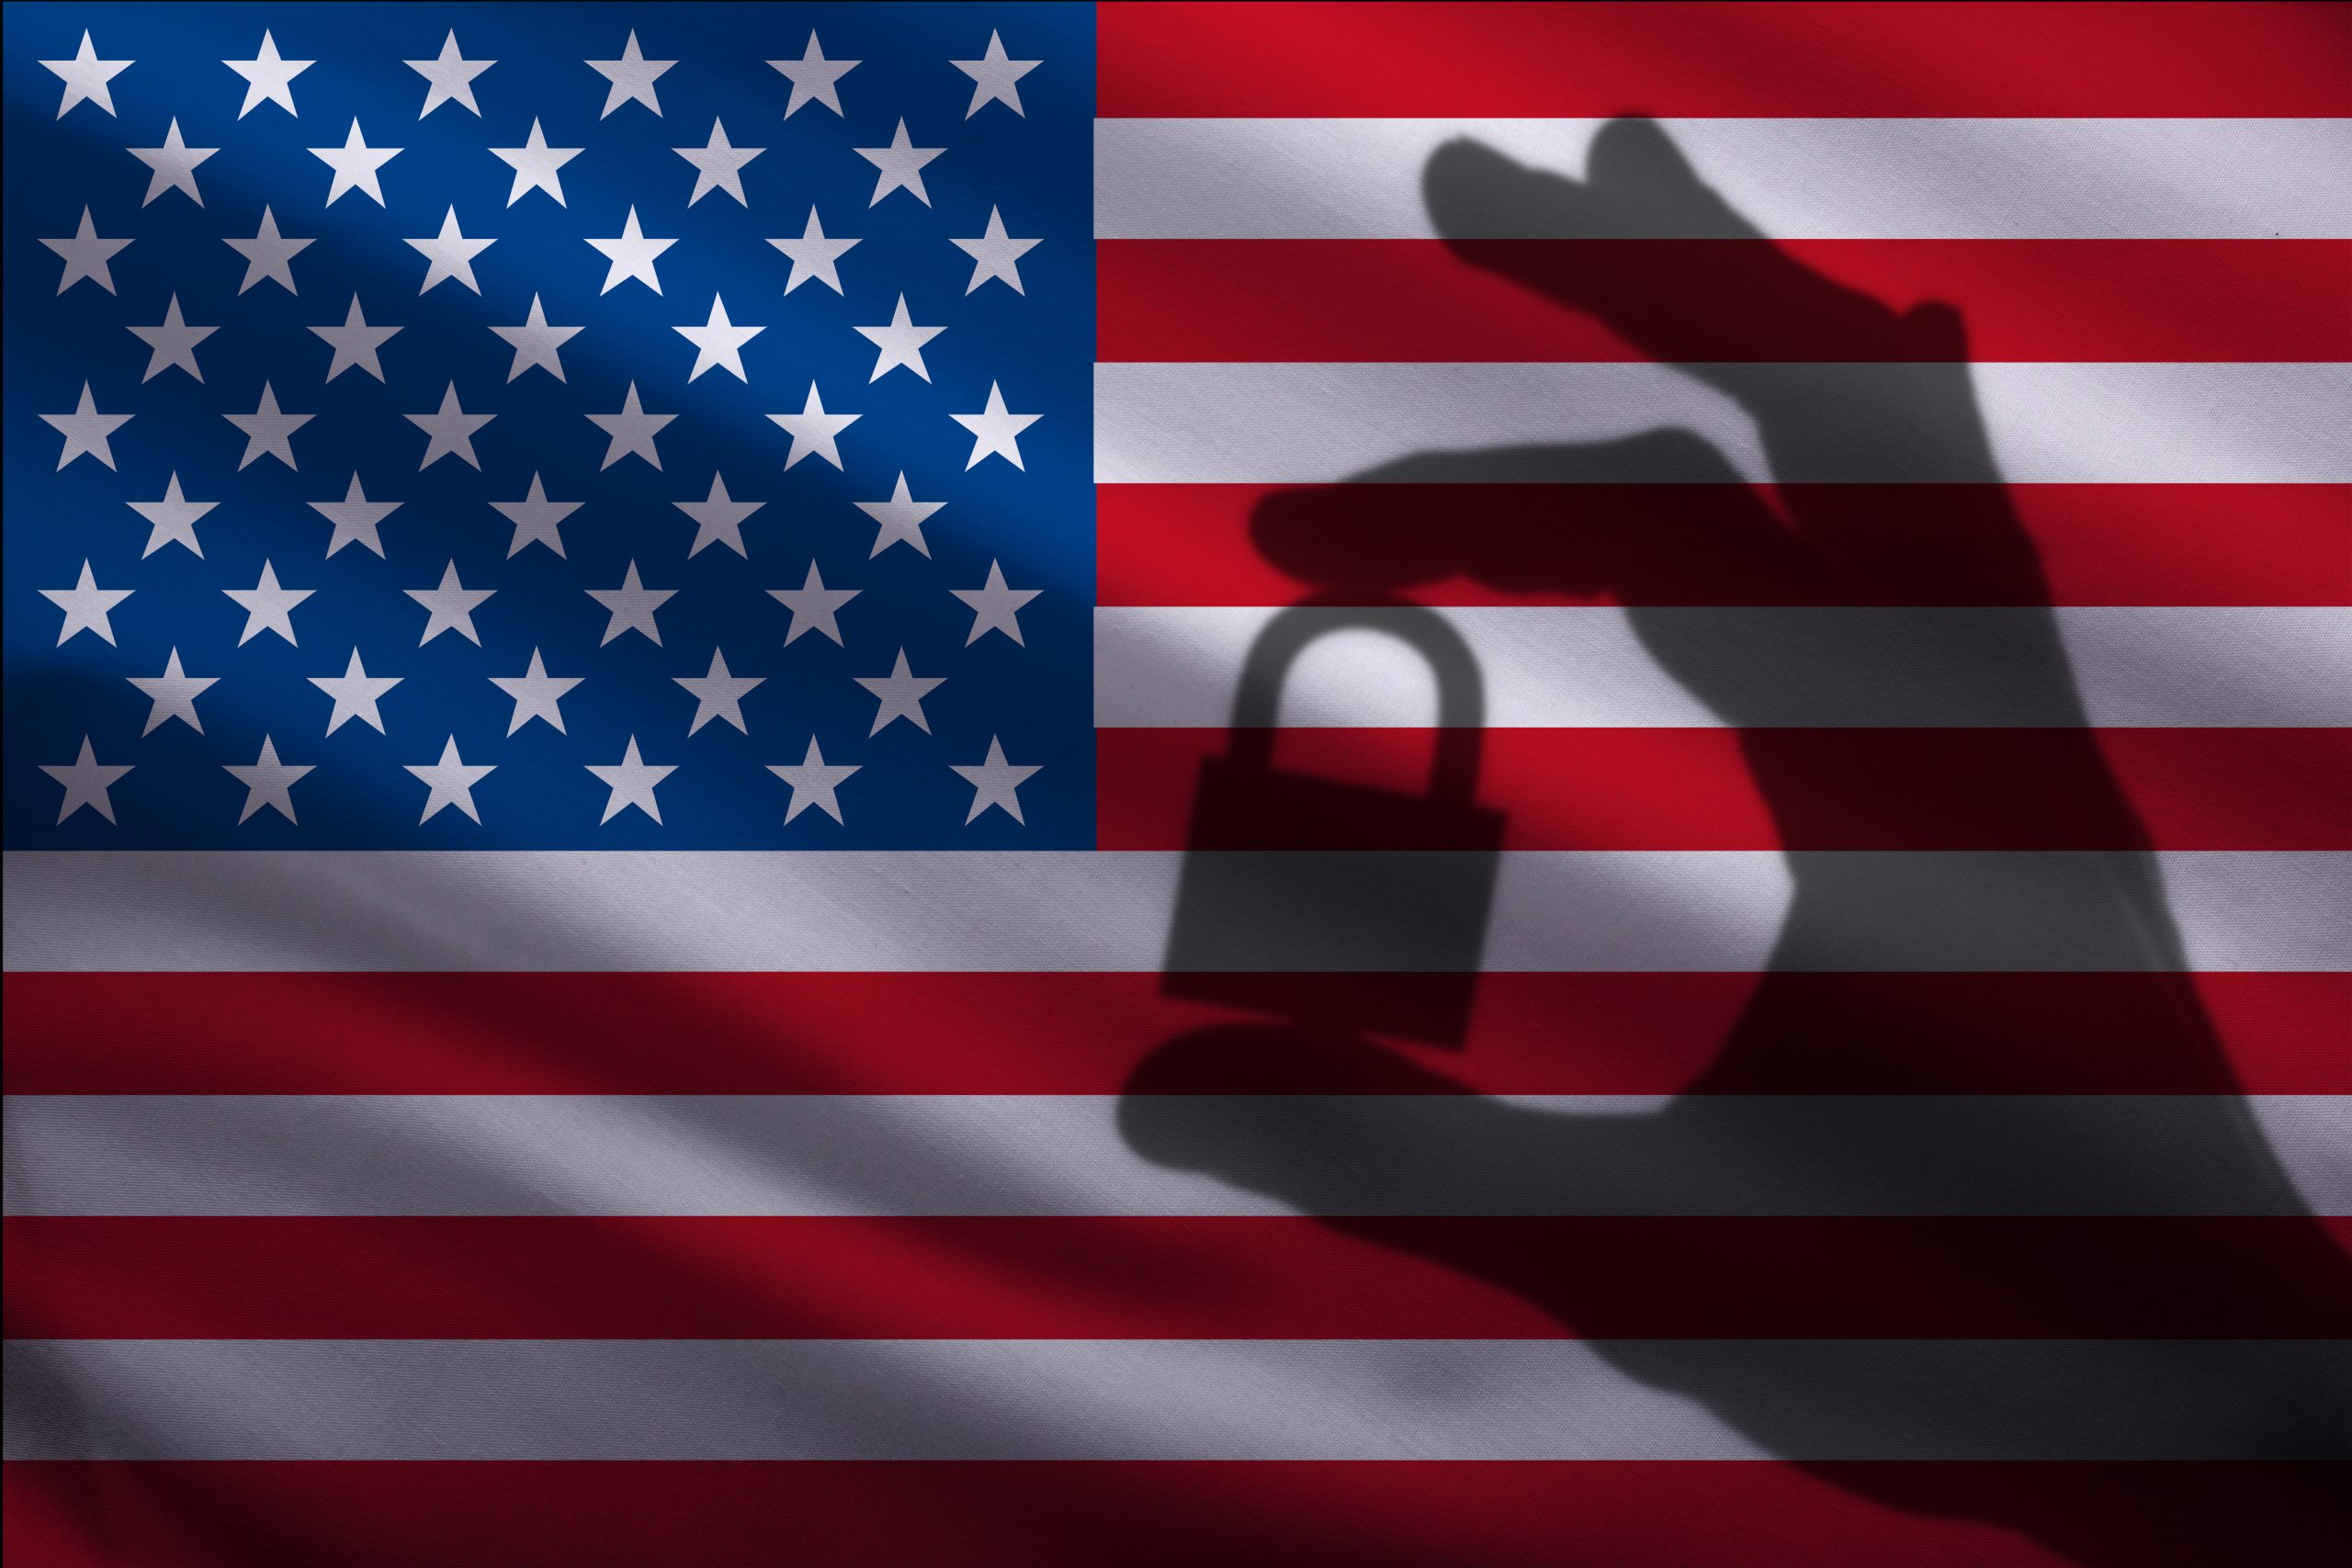 U.S. National Privacy Legislation